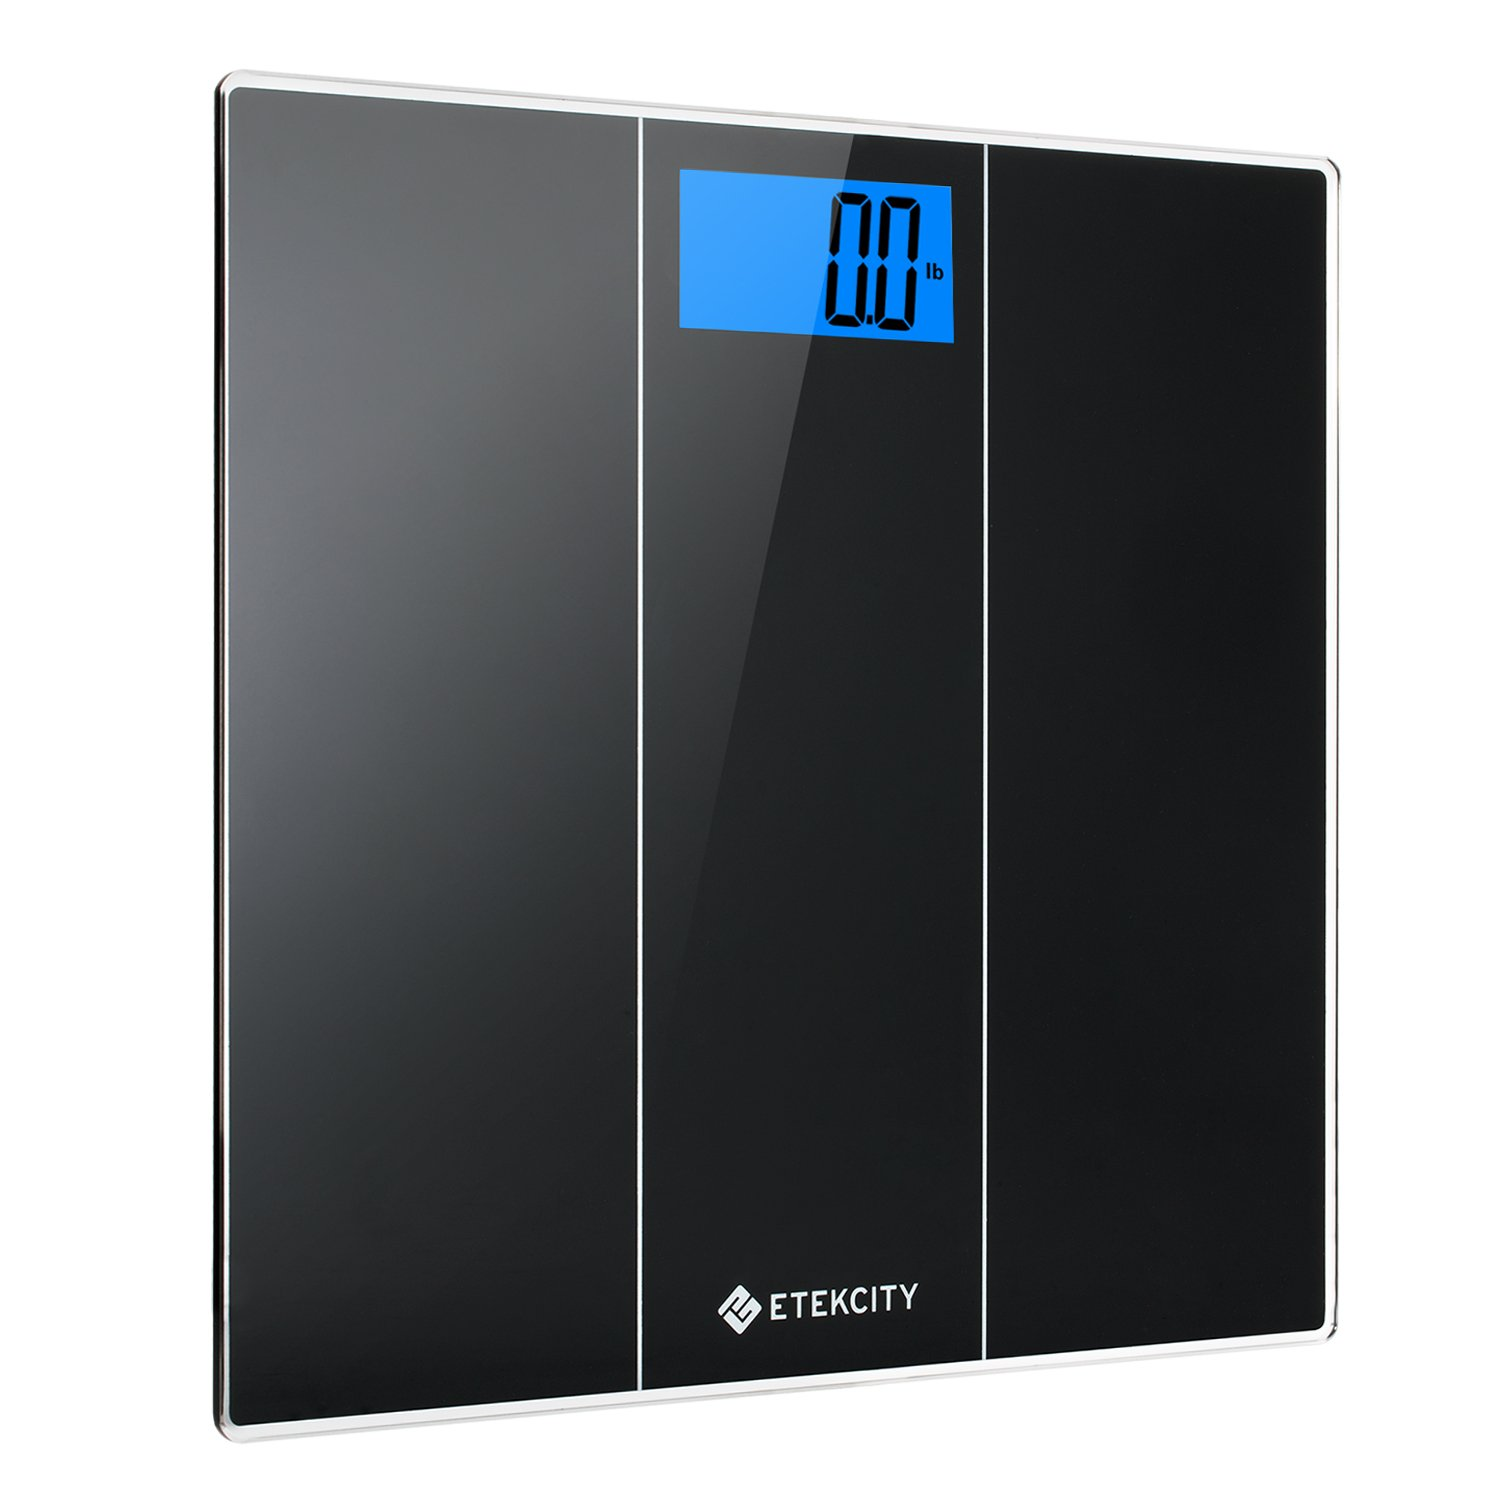 Etekcity Digital Body Weight Bathroom Scale with Body Measuring Tape and Large Easy Read Backlit LCD Display, 400 Pounds